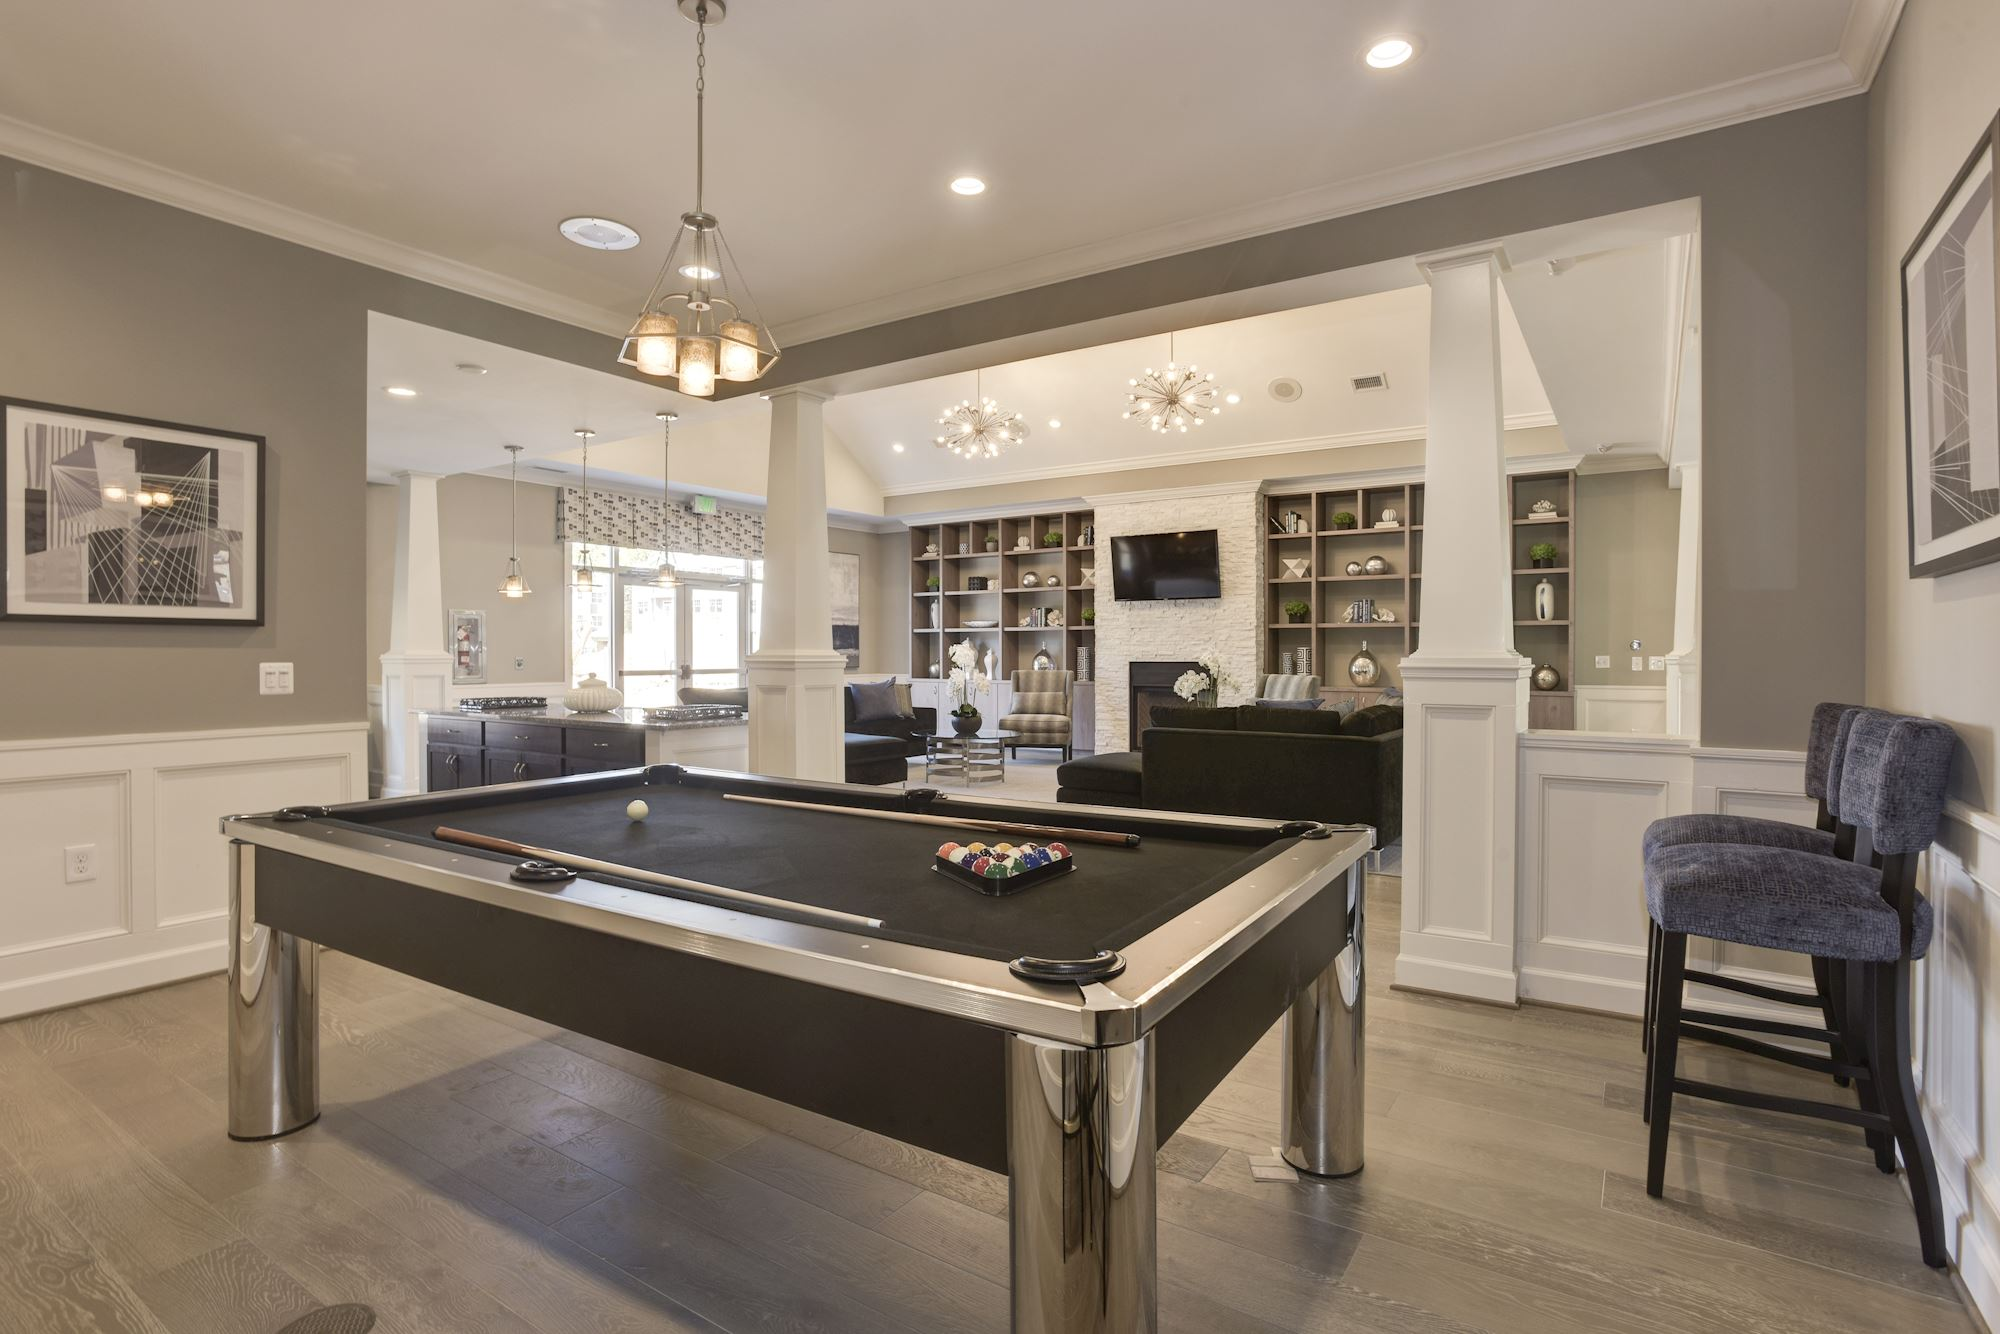 Avanti Luxury Apartments in Bel Air, MD - Billiards Room